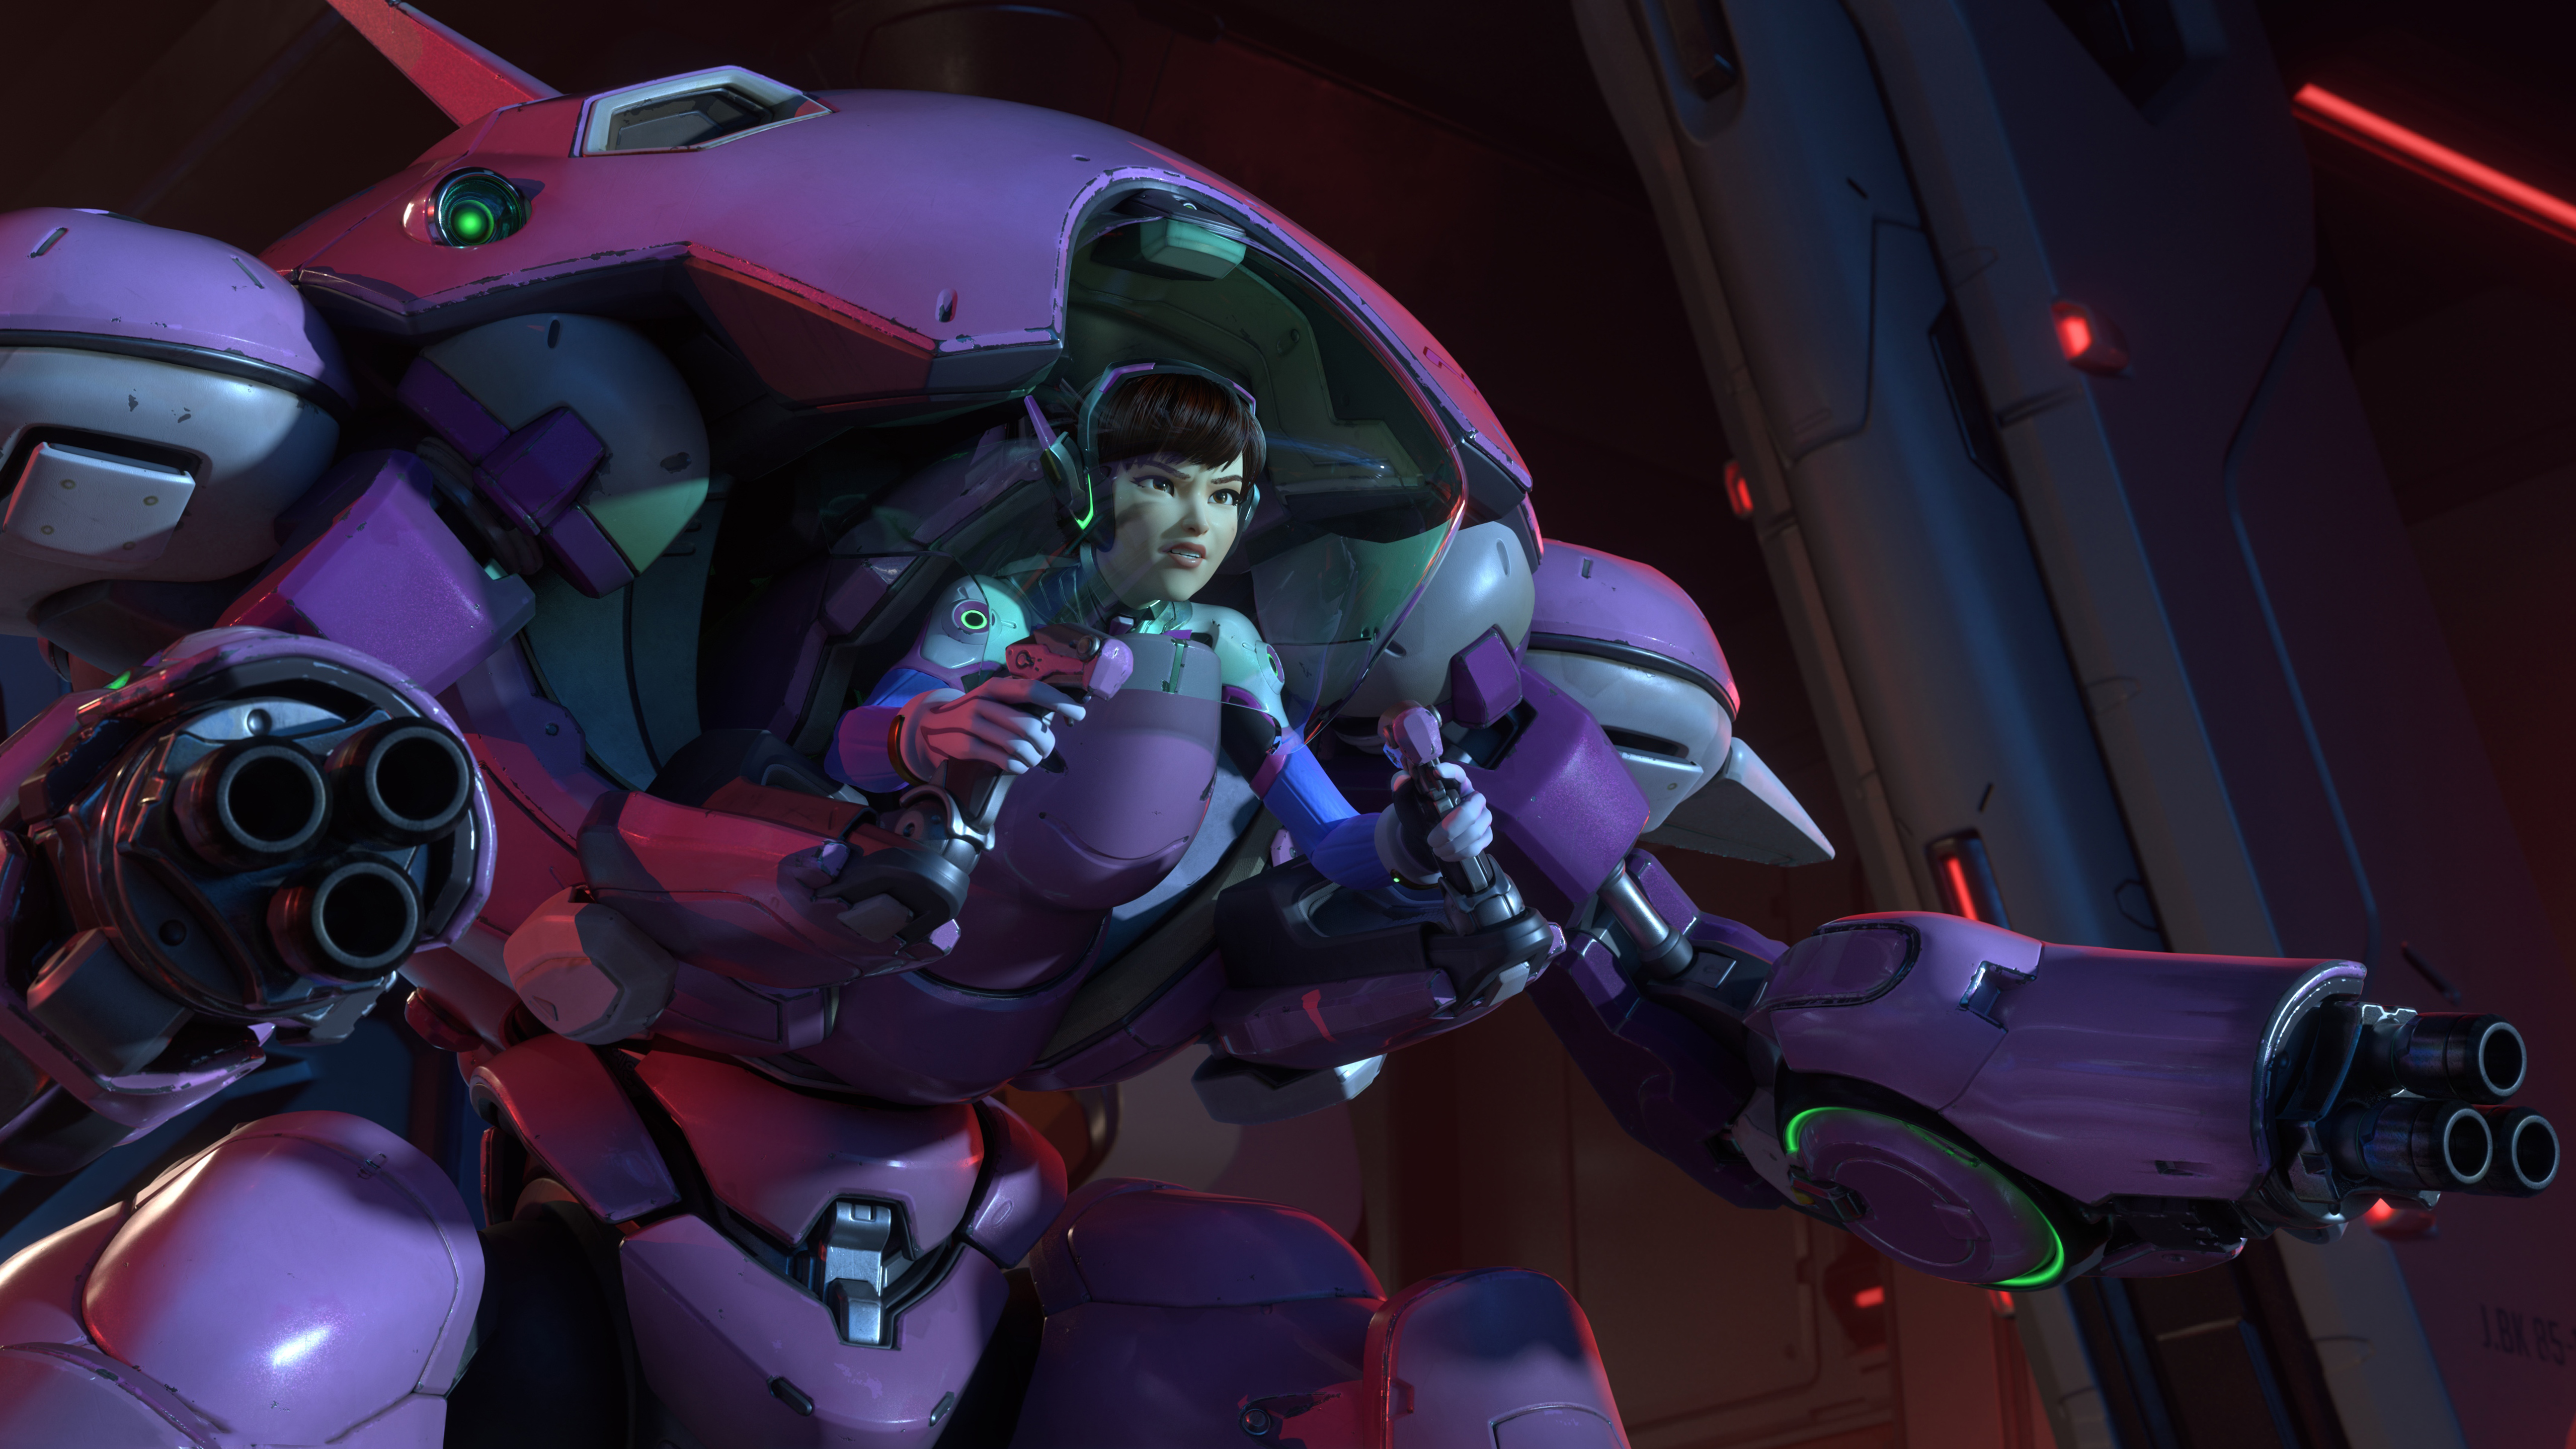 Overwatch Dva With Meka 5k Hd Games 4k Wallpapers Images Backgrounds Photos And Pictures